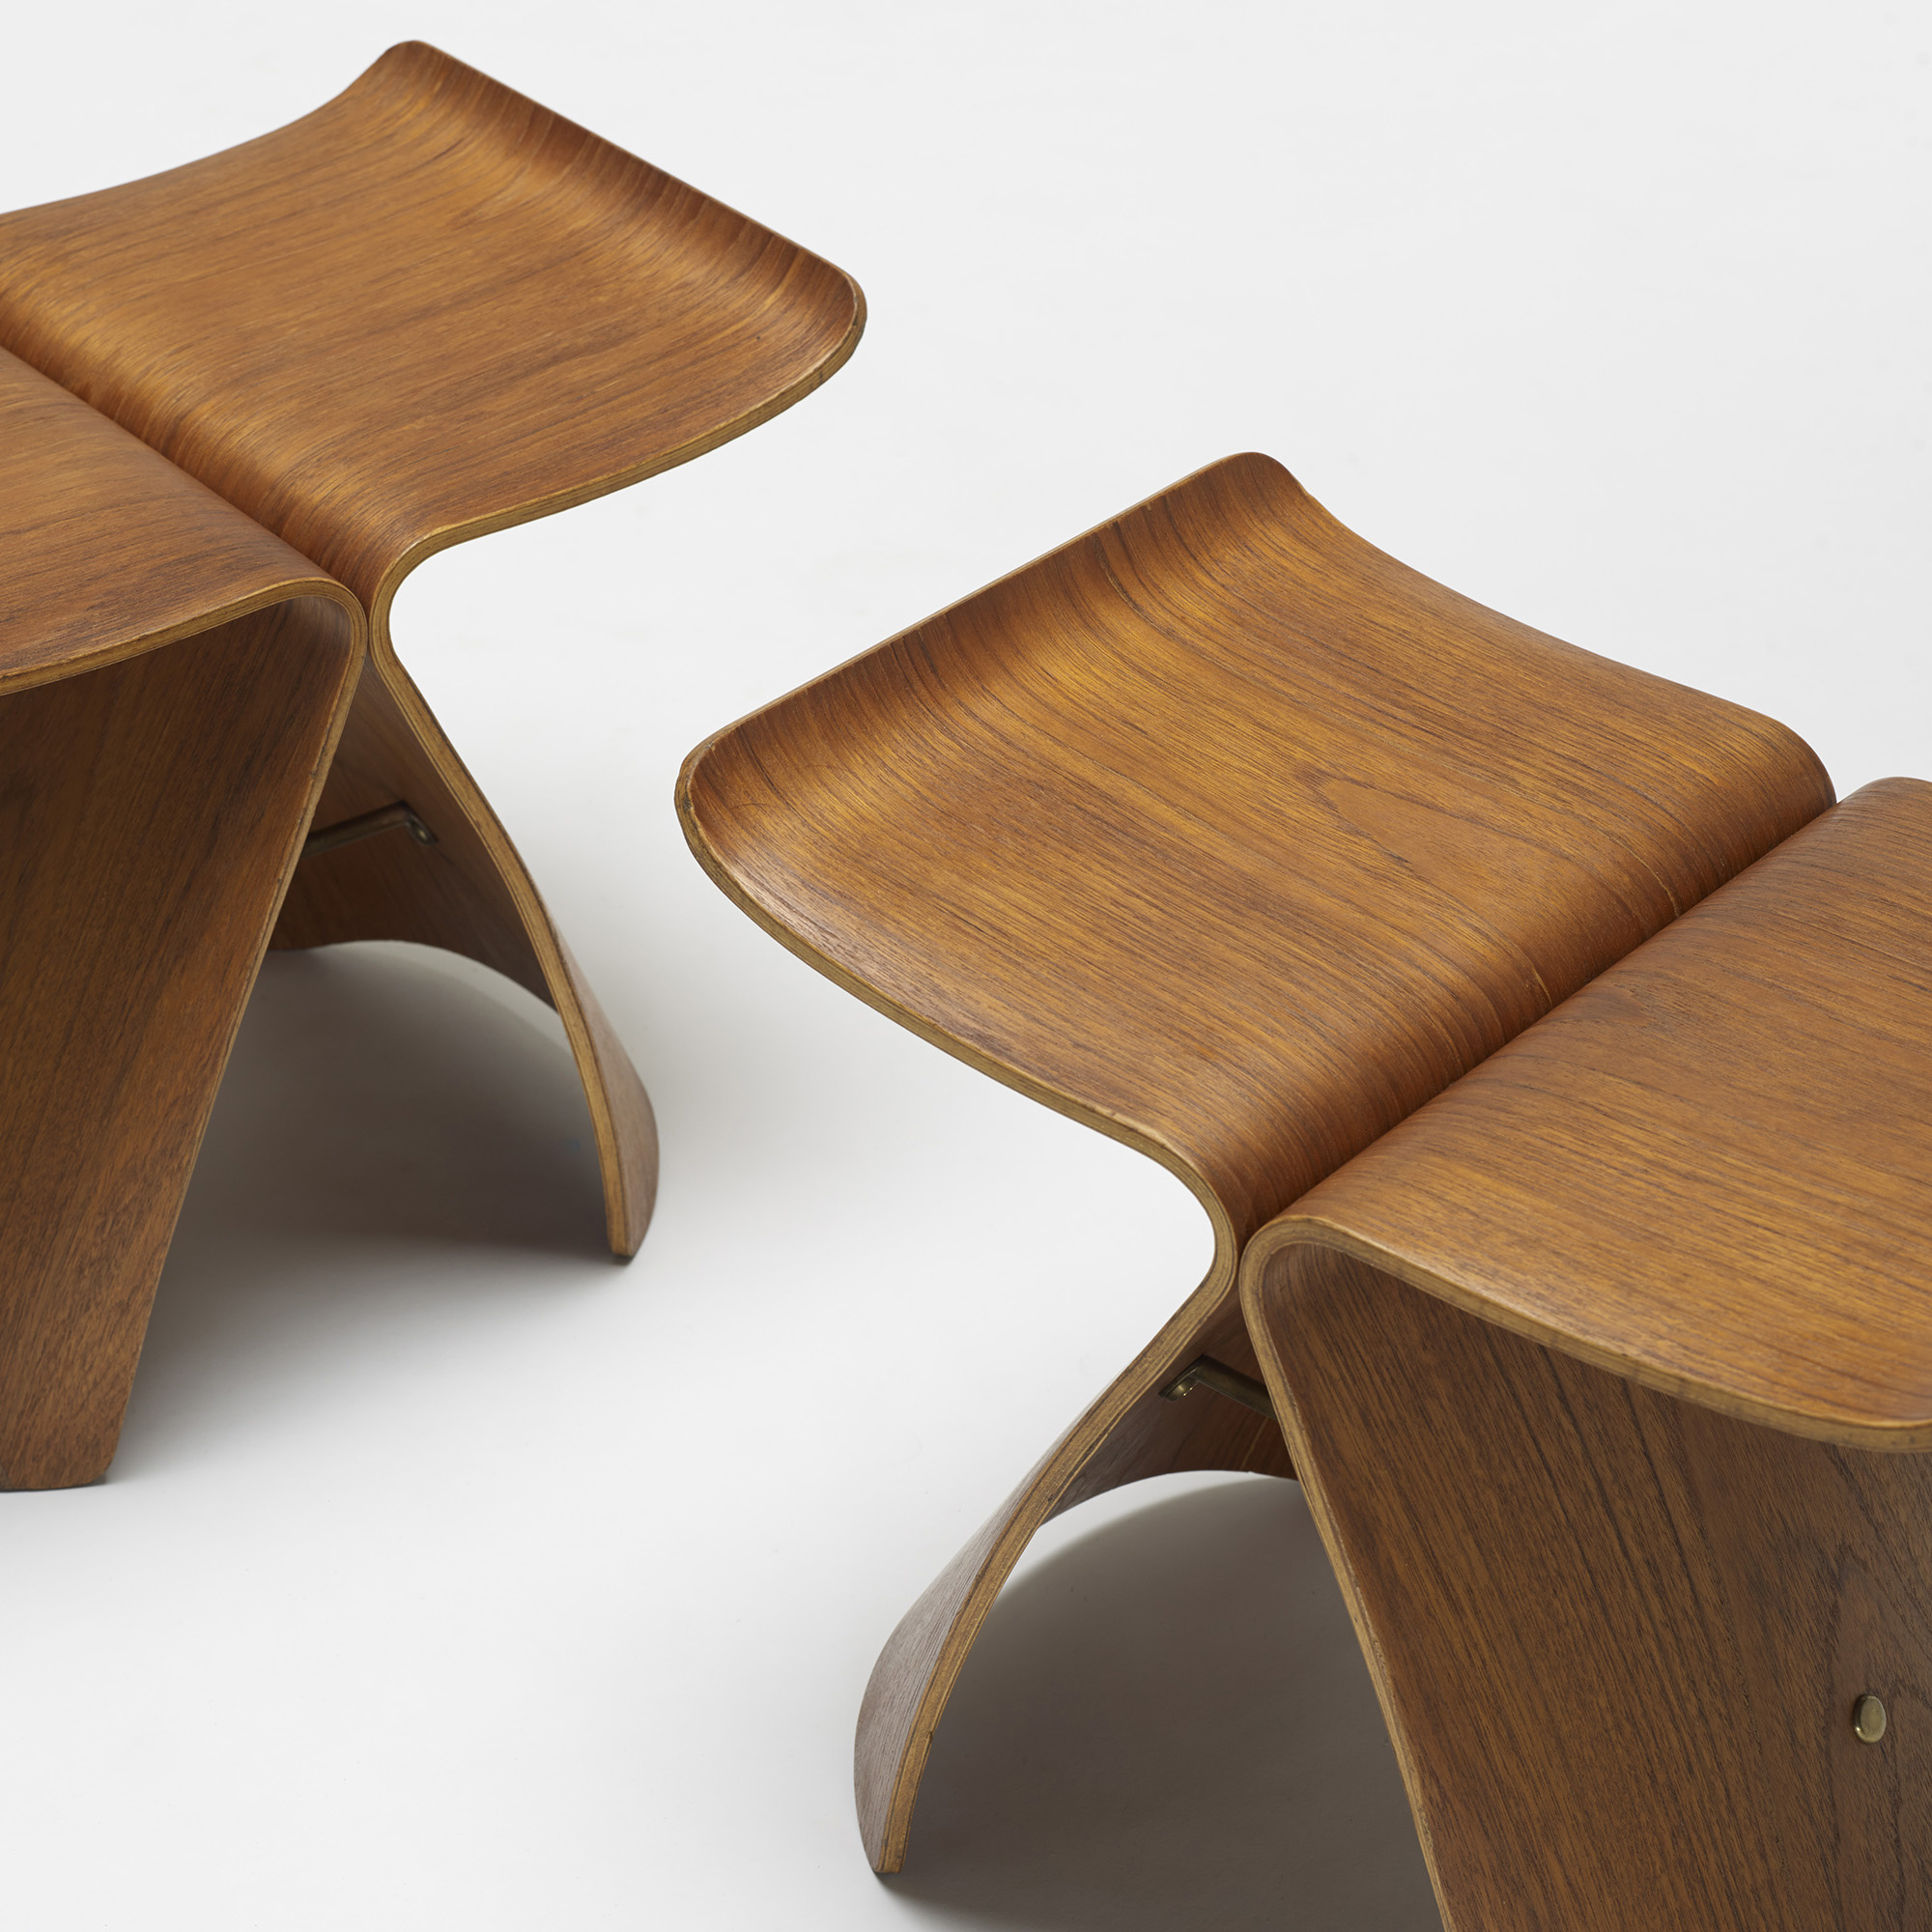 Butterfly chair sori yanagi -  405 Sori Yanagi Butterfly Stools Pair 3 Of 4